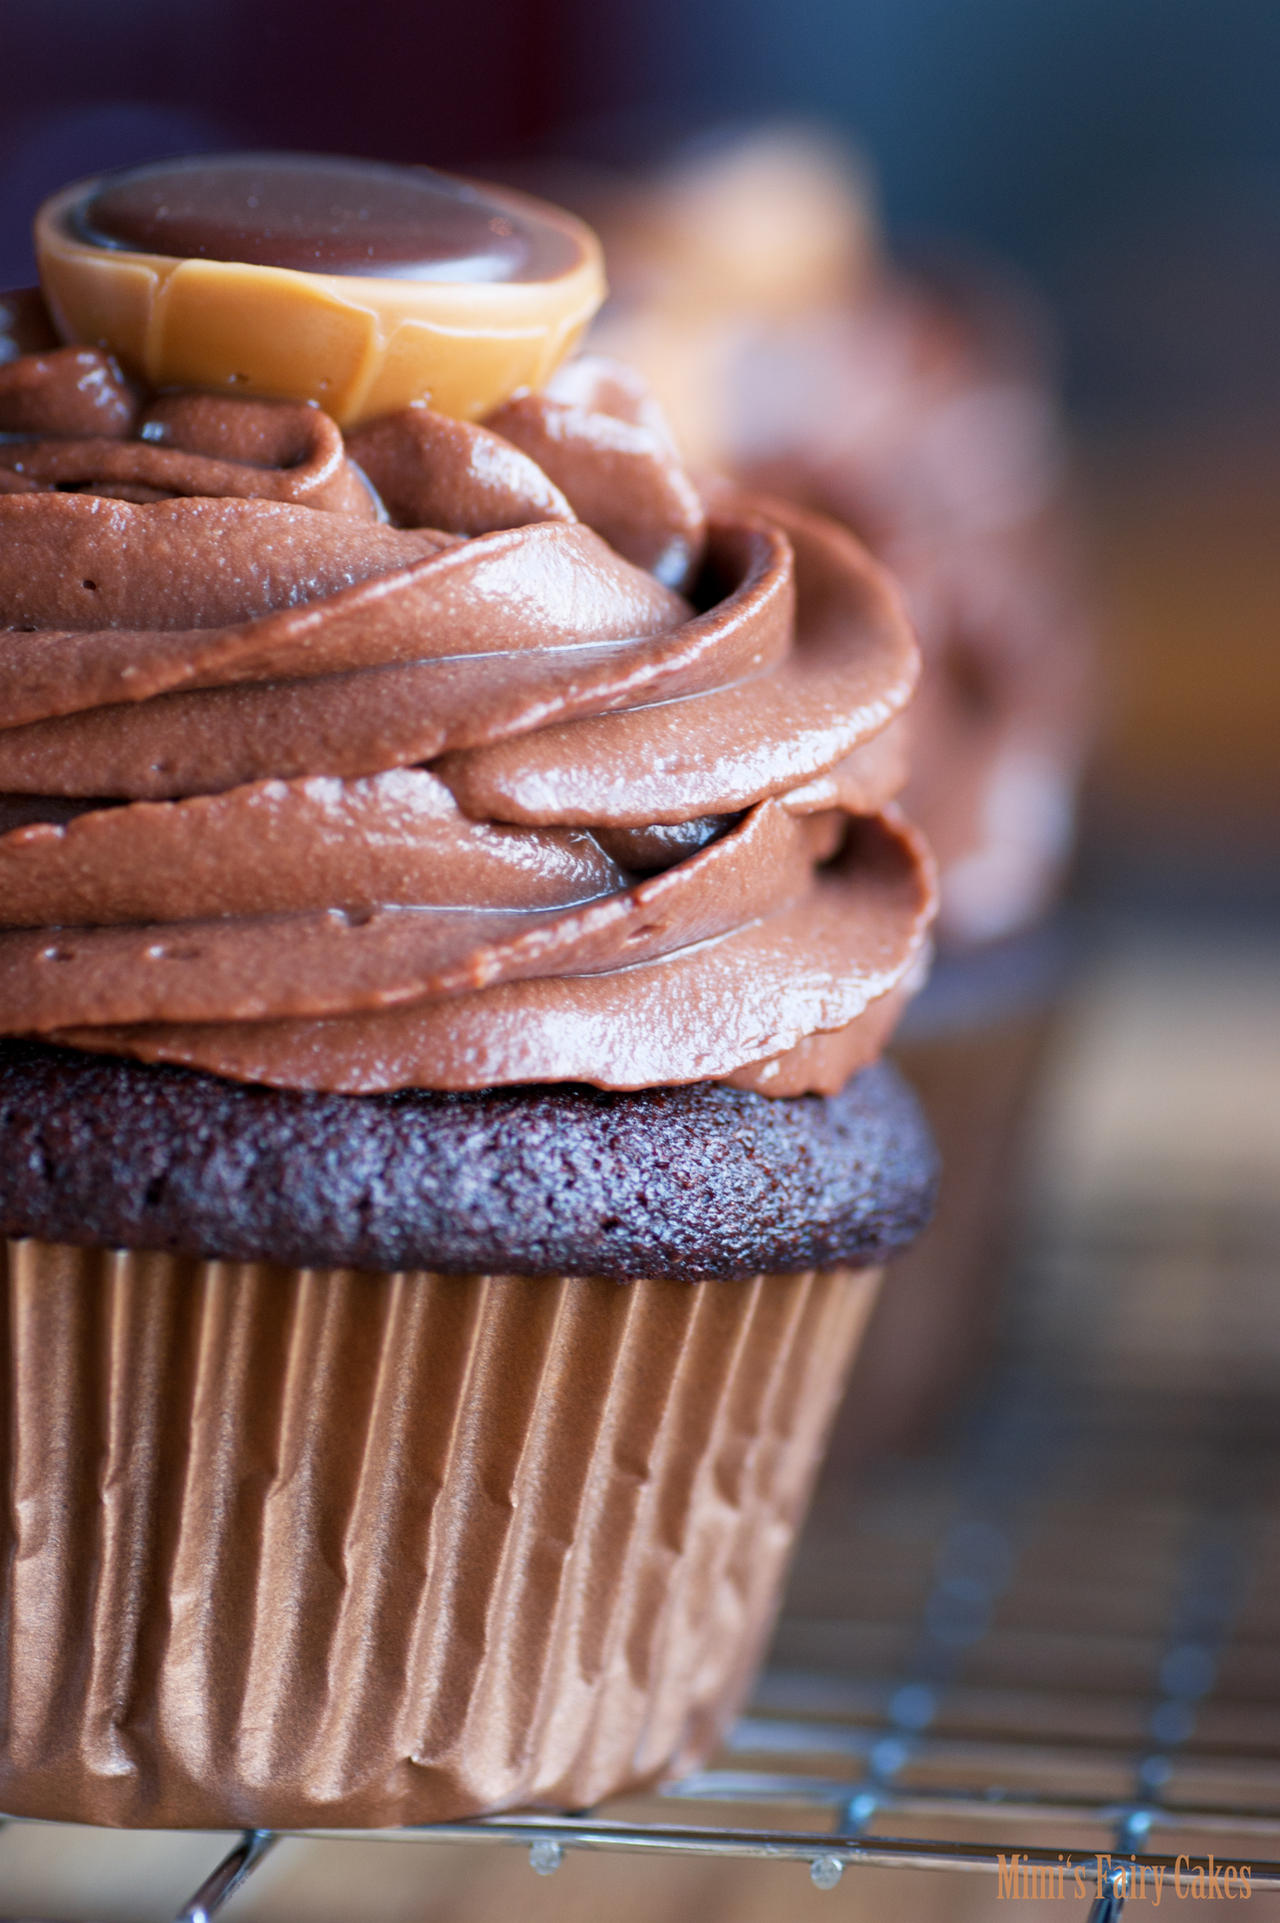 Toffifee-Chocolate-Cupcake by Cailleanne